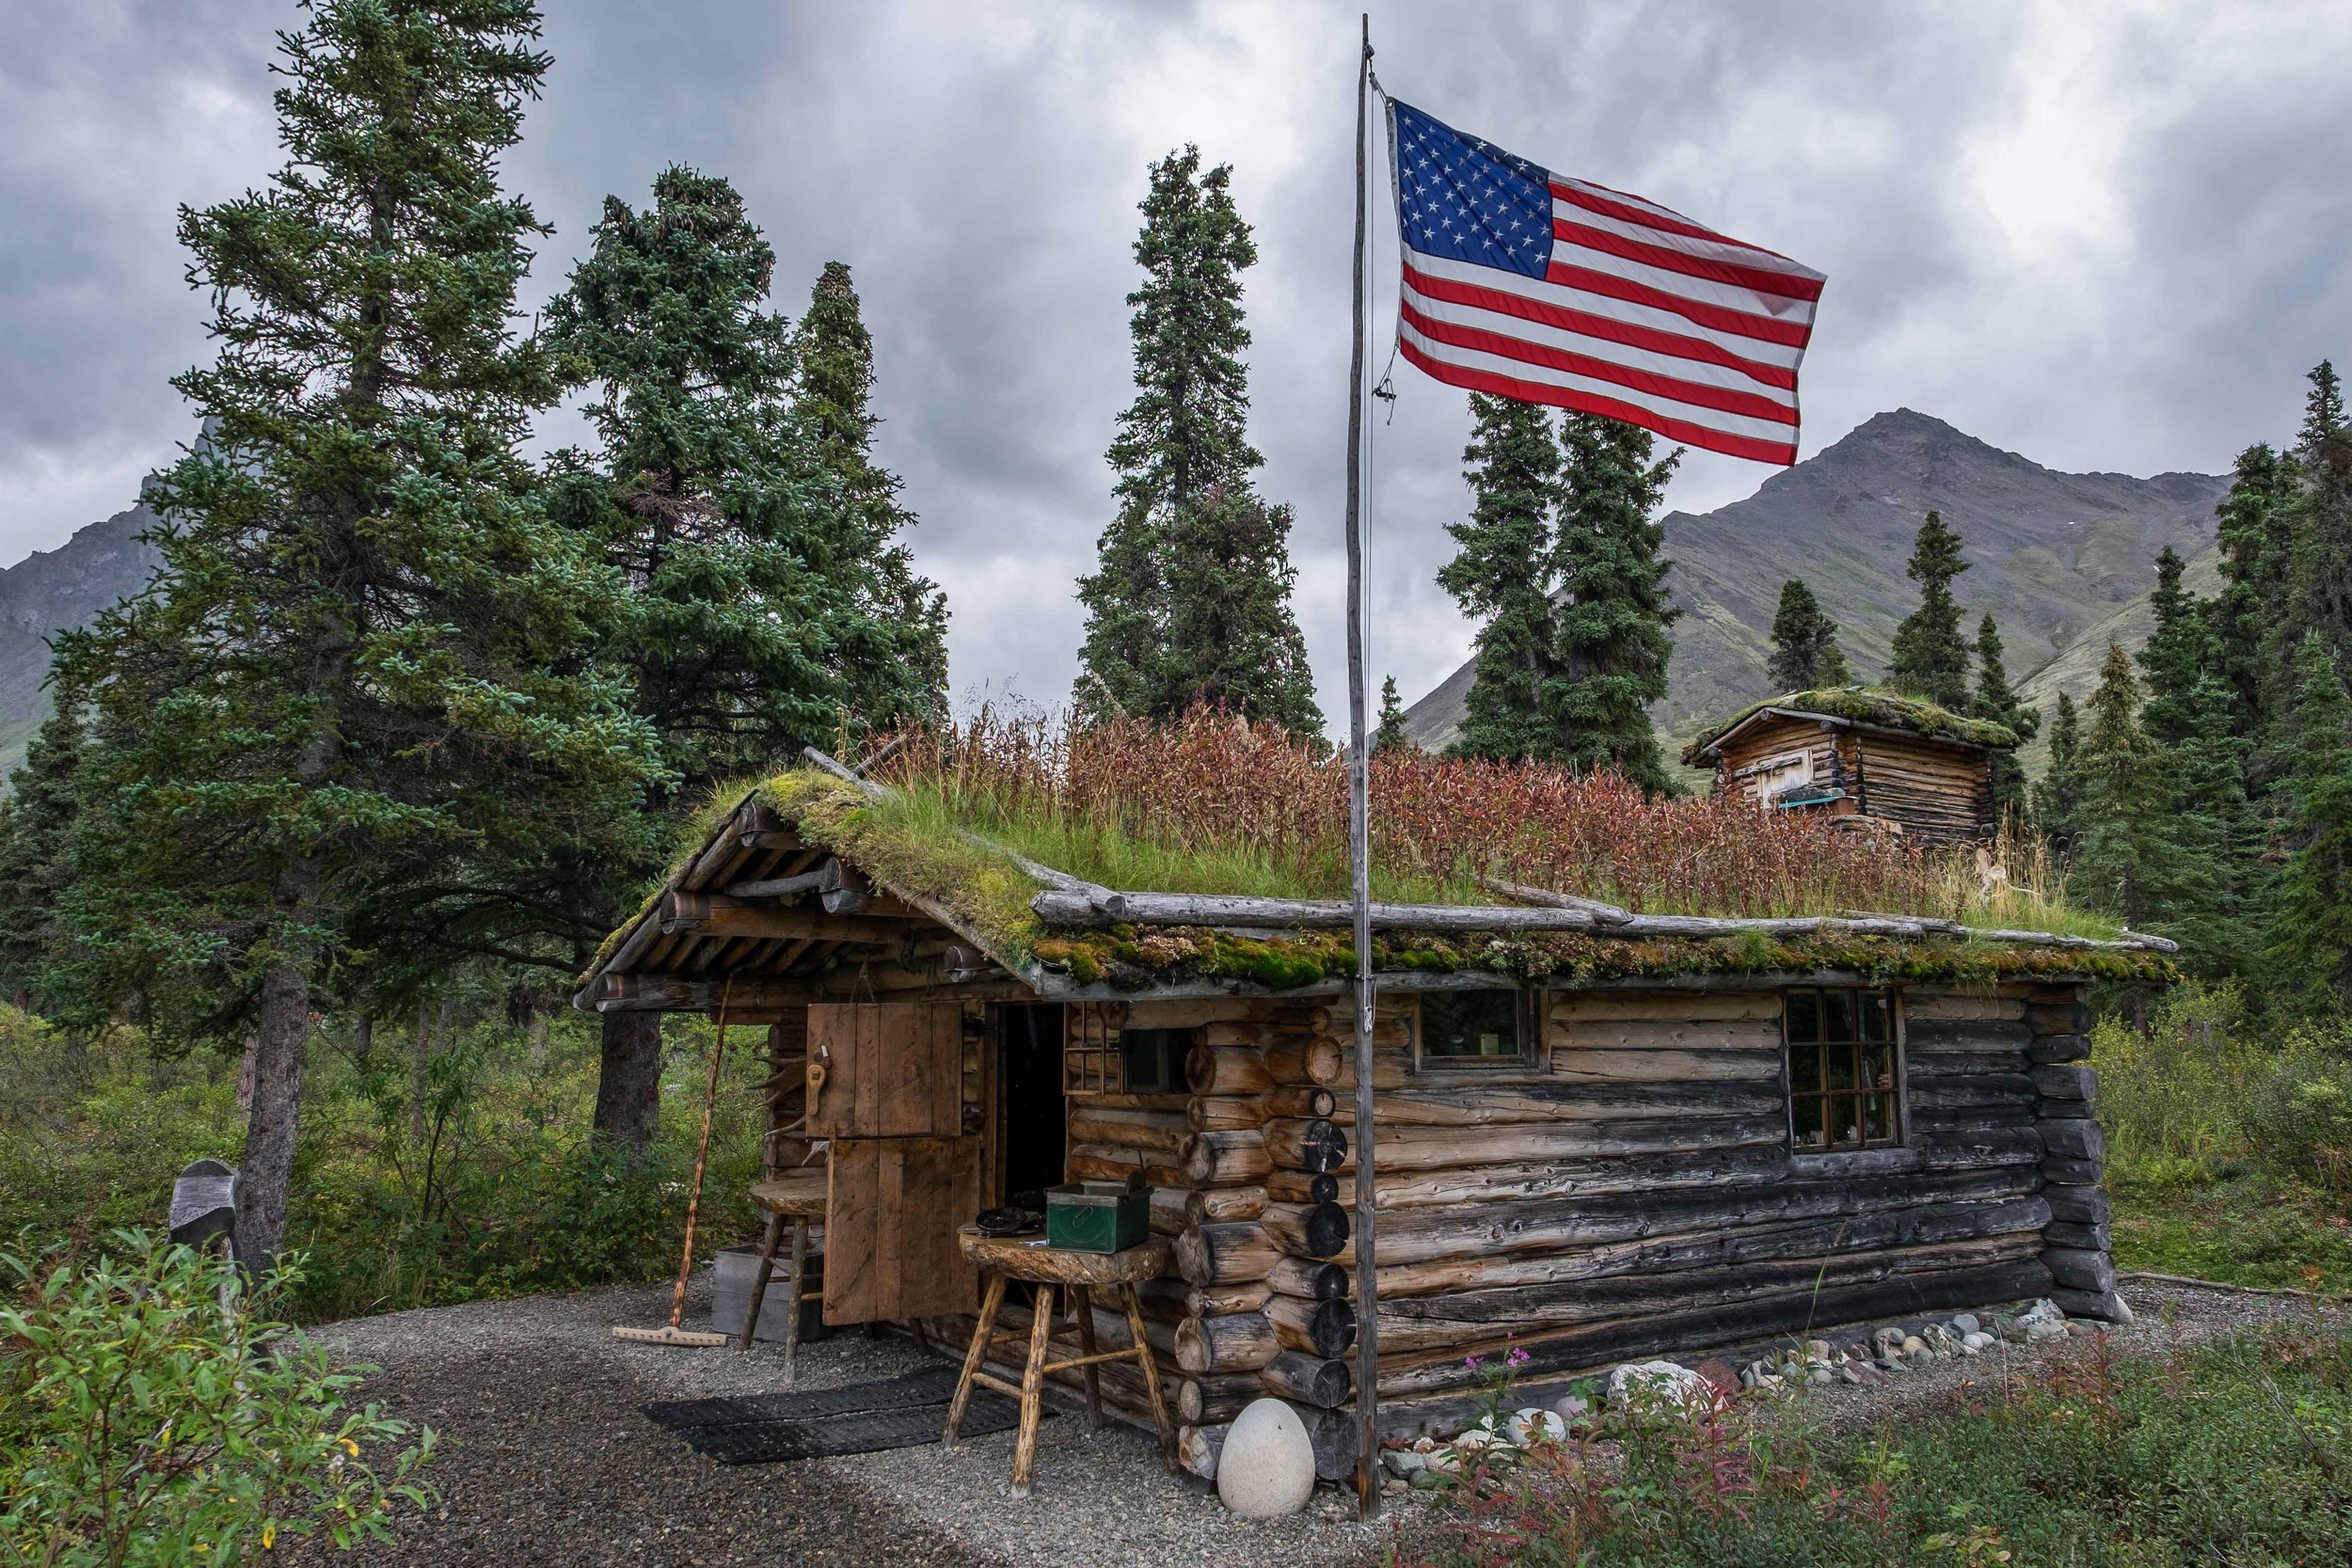 Richard Proenneke's cabin at Upper Twin Lakes in Lake Clark. Proenneke was a famous outdoorsman who made his life at this beautiful lake. His cabin is a great example of his excellent craftmanship.